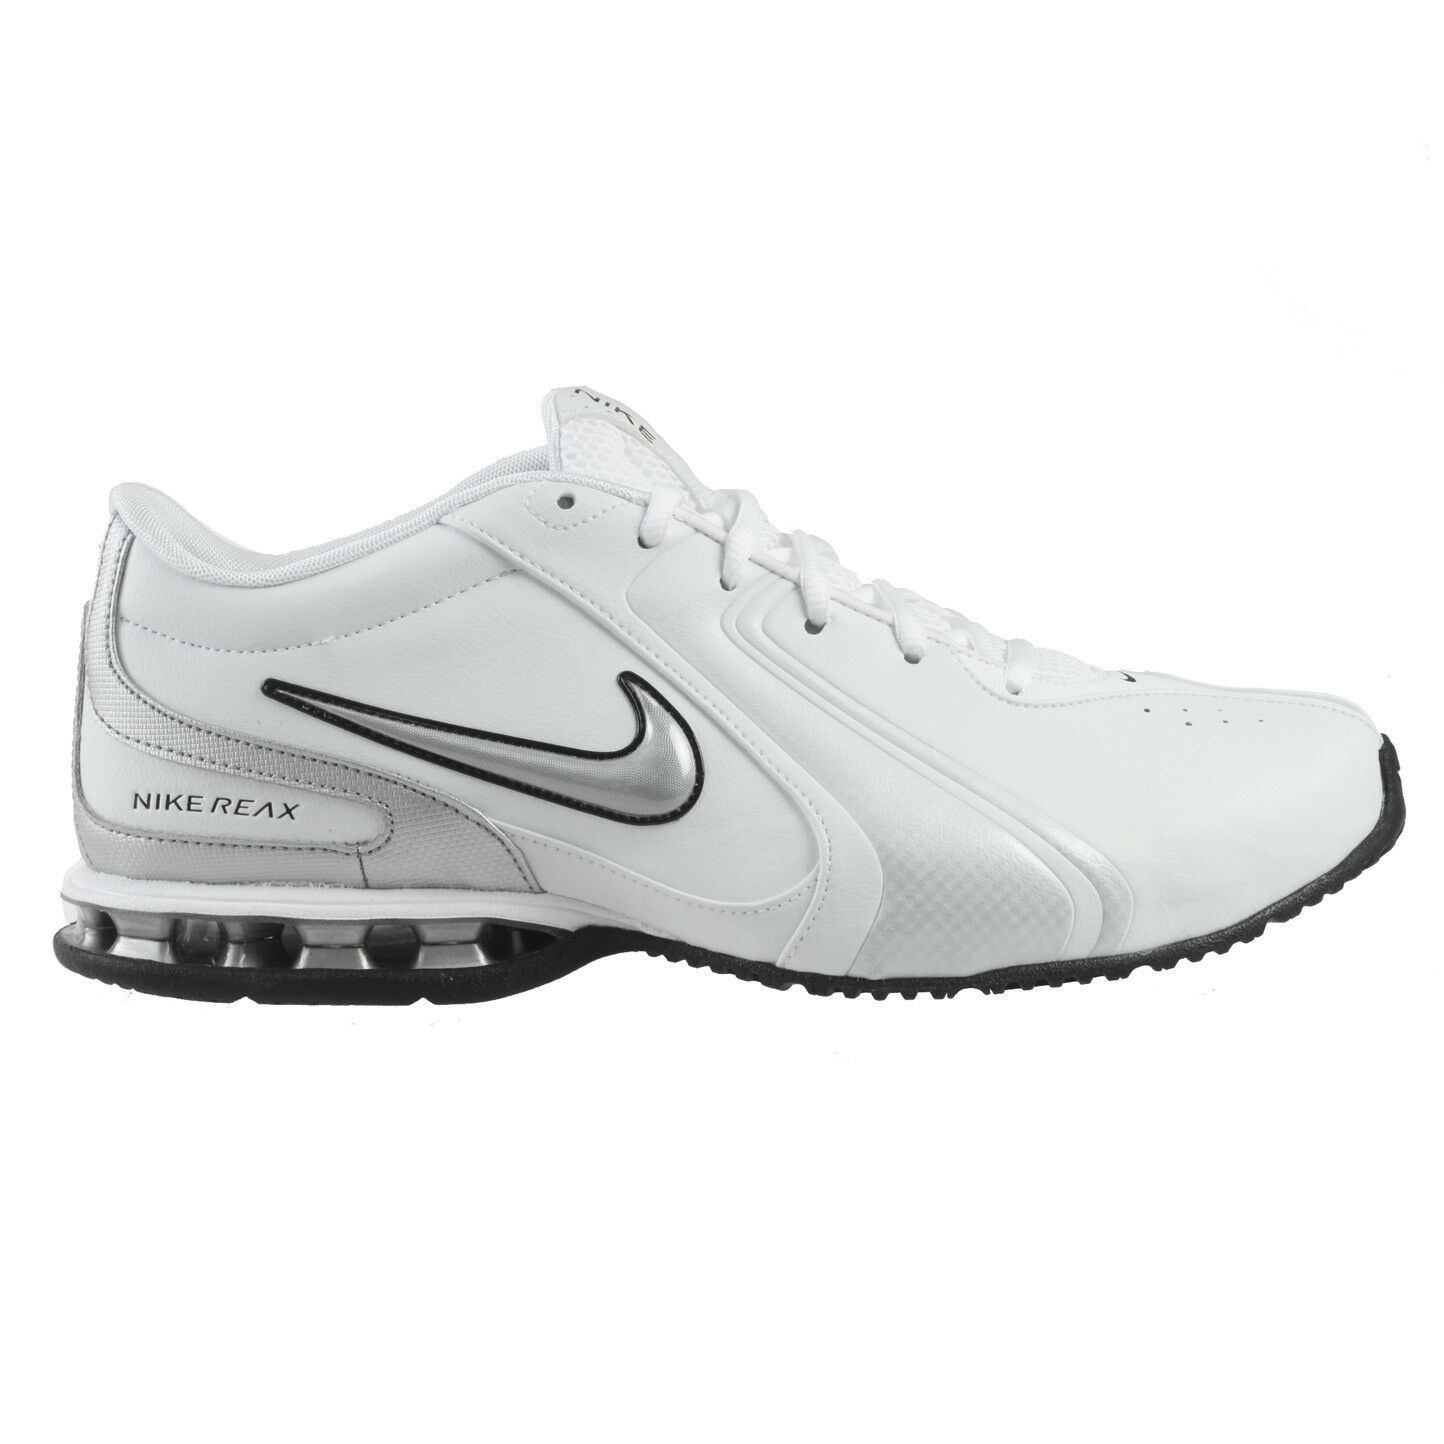 Nike Reax TR III SL Mens 333765-101 White Silver Cross Training shoes Size 11